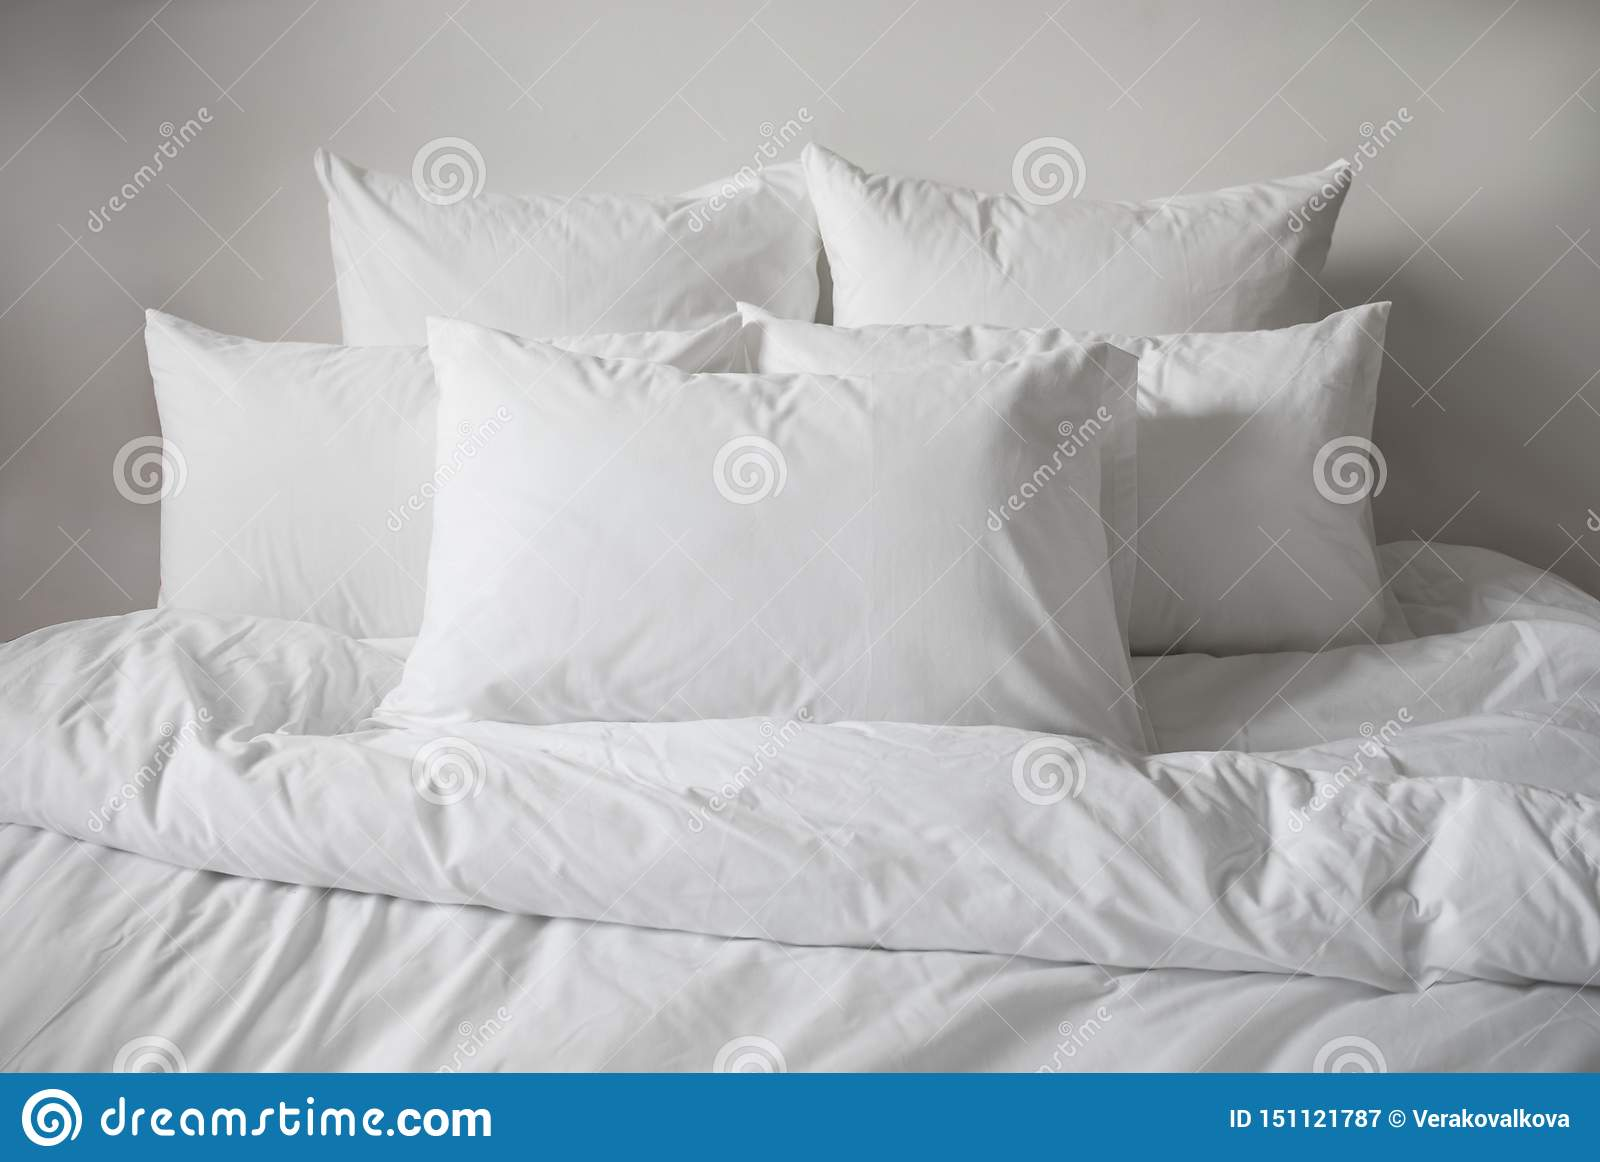 White pillows, duvet and duvetcase in a bed. Side view